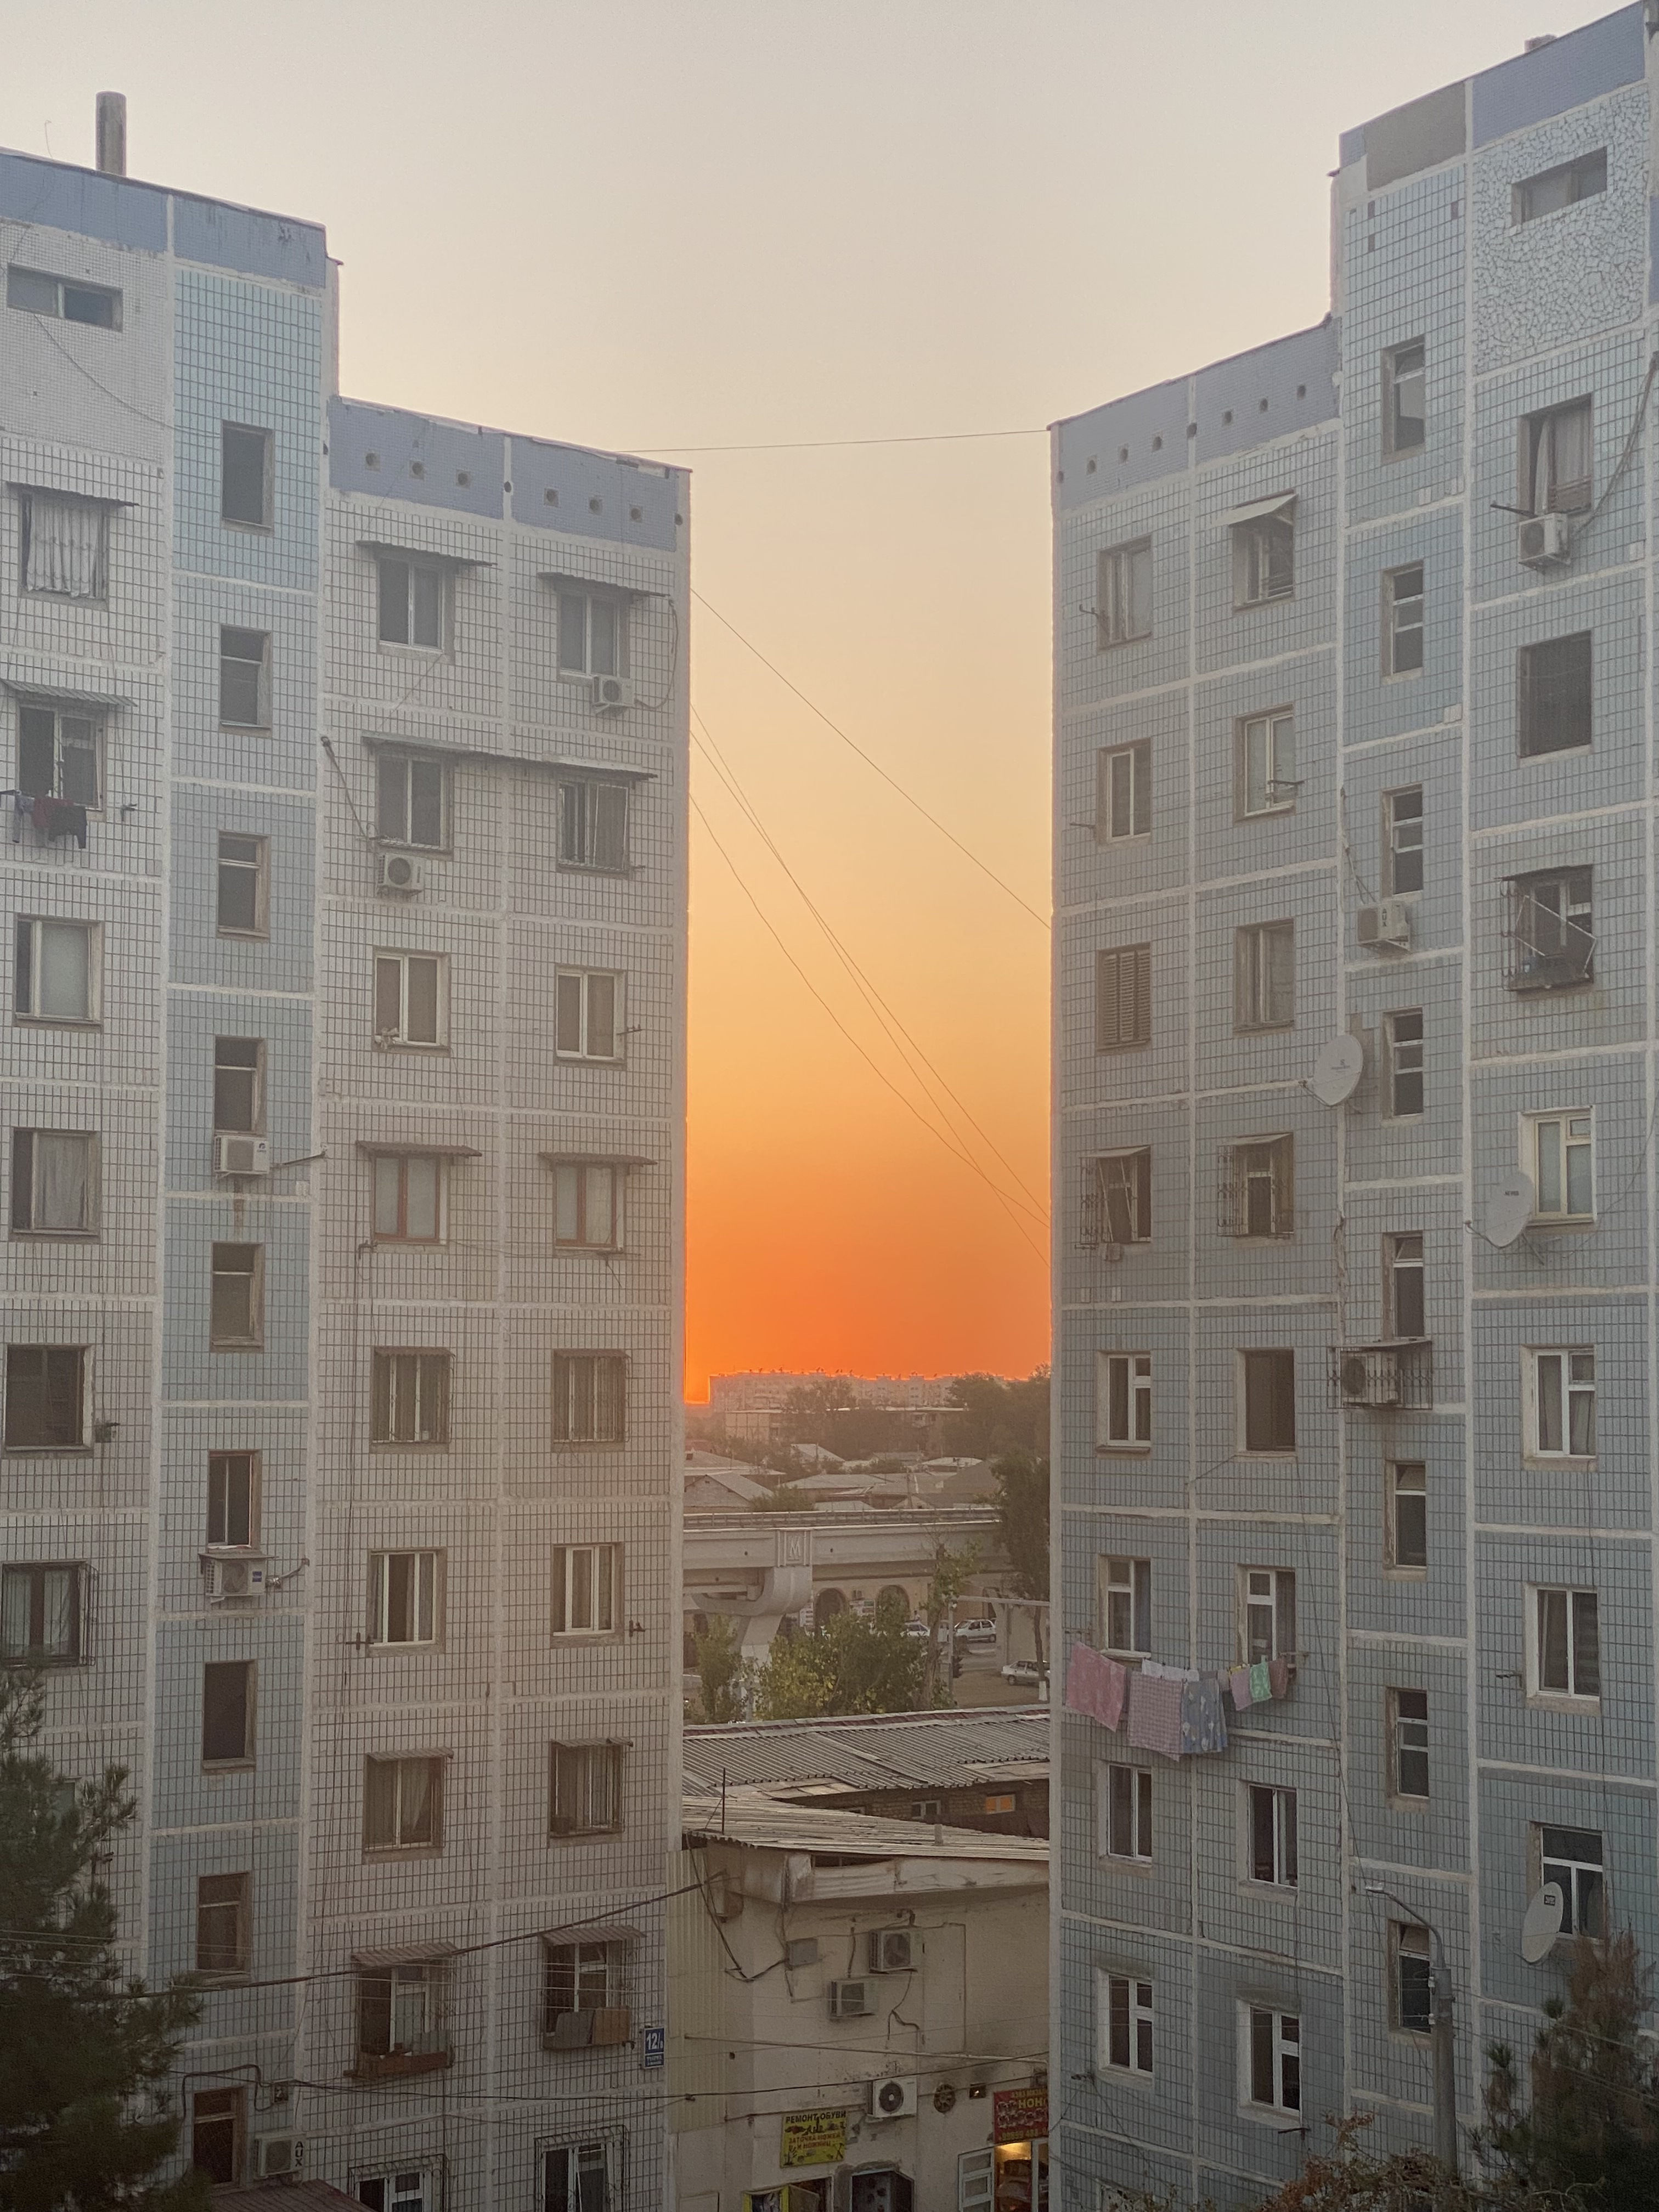 The sunset between old buildings